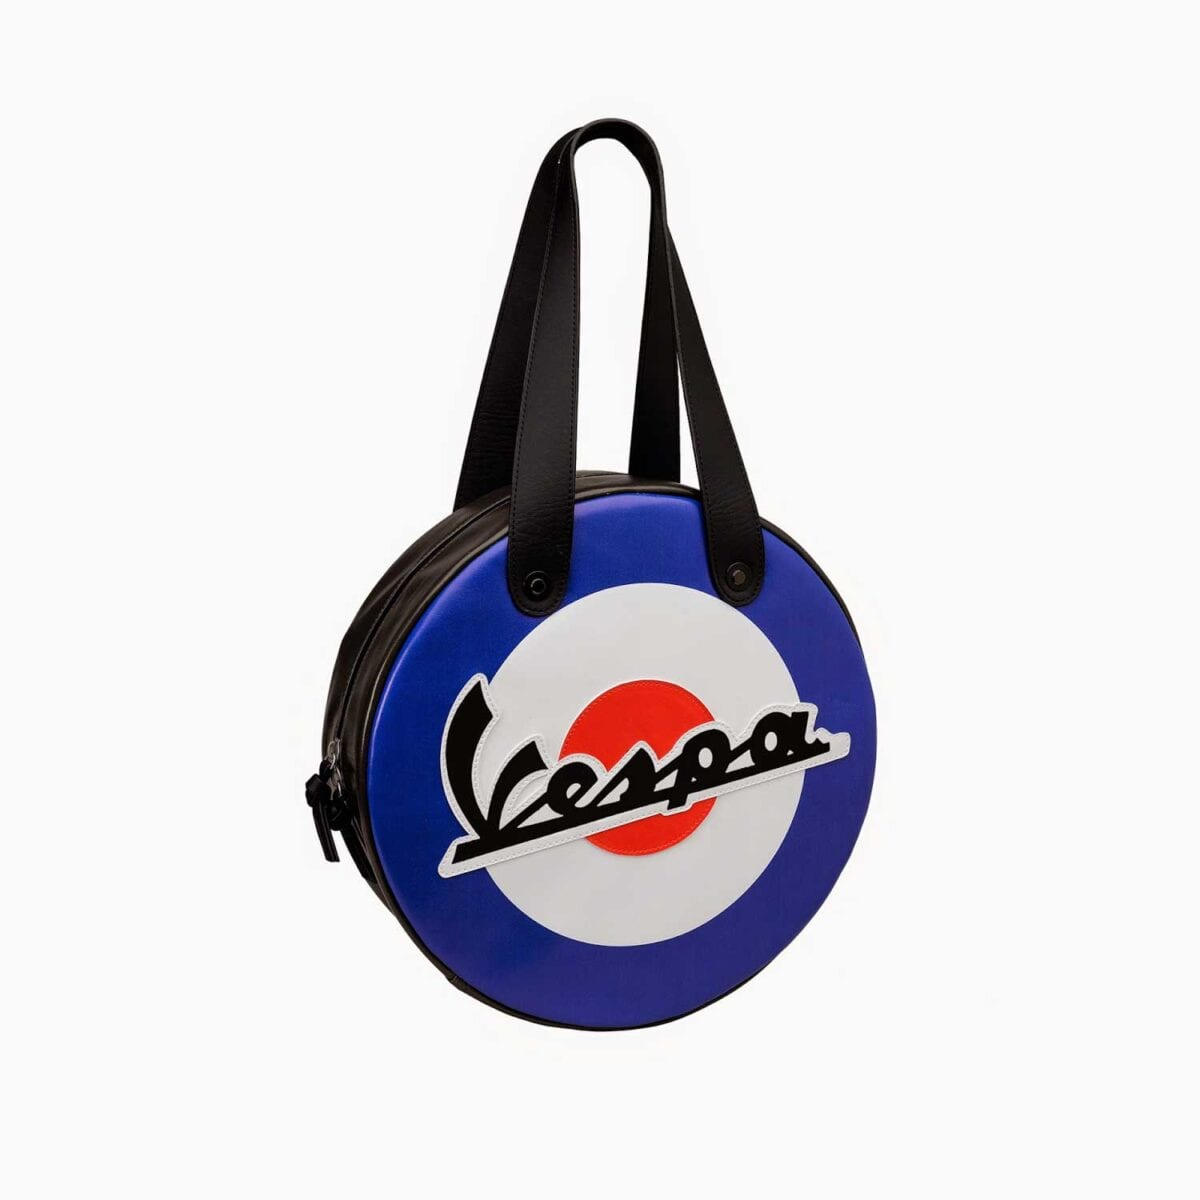 605879M003-Tunnel-bag-French